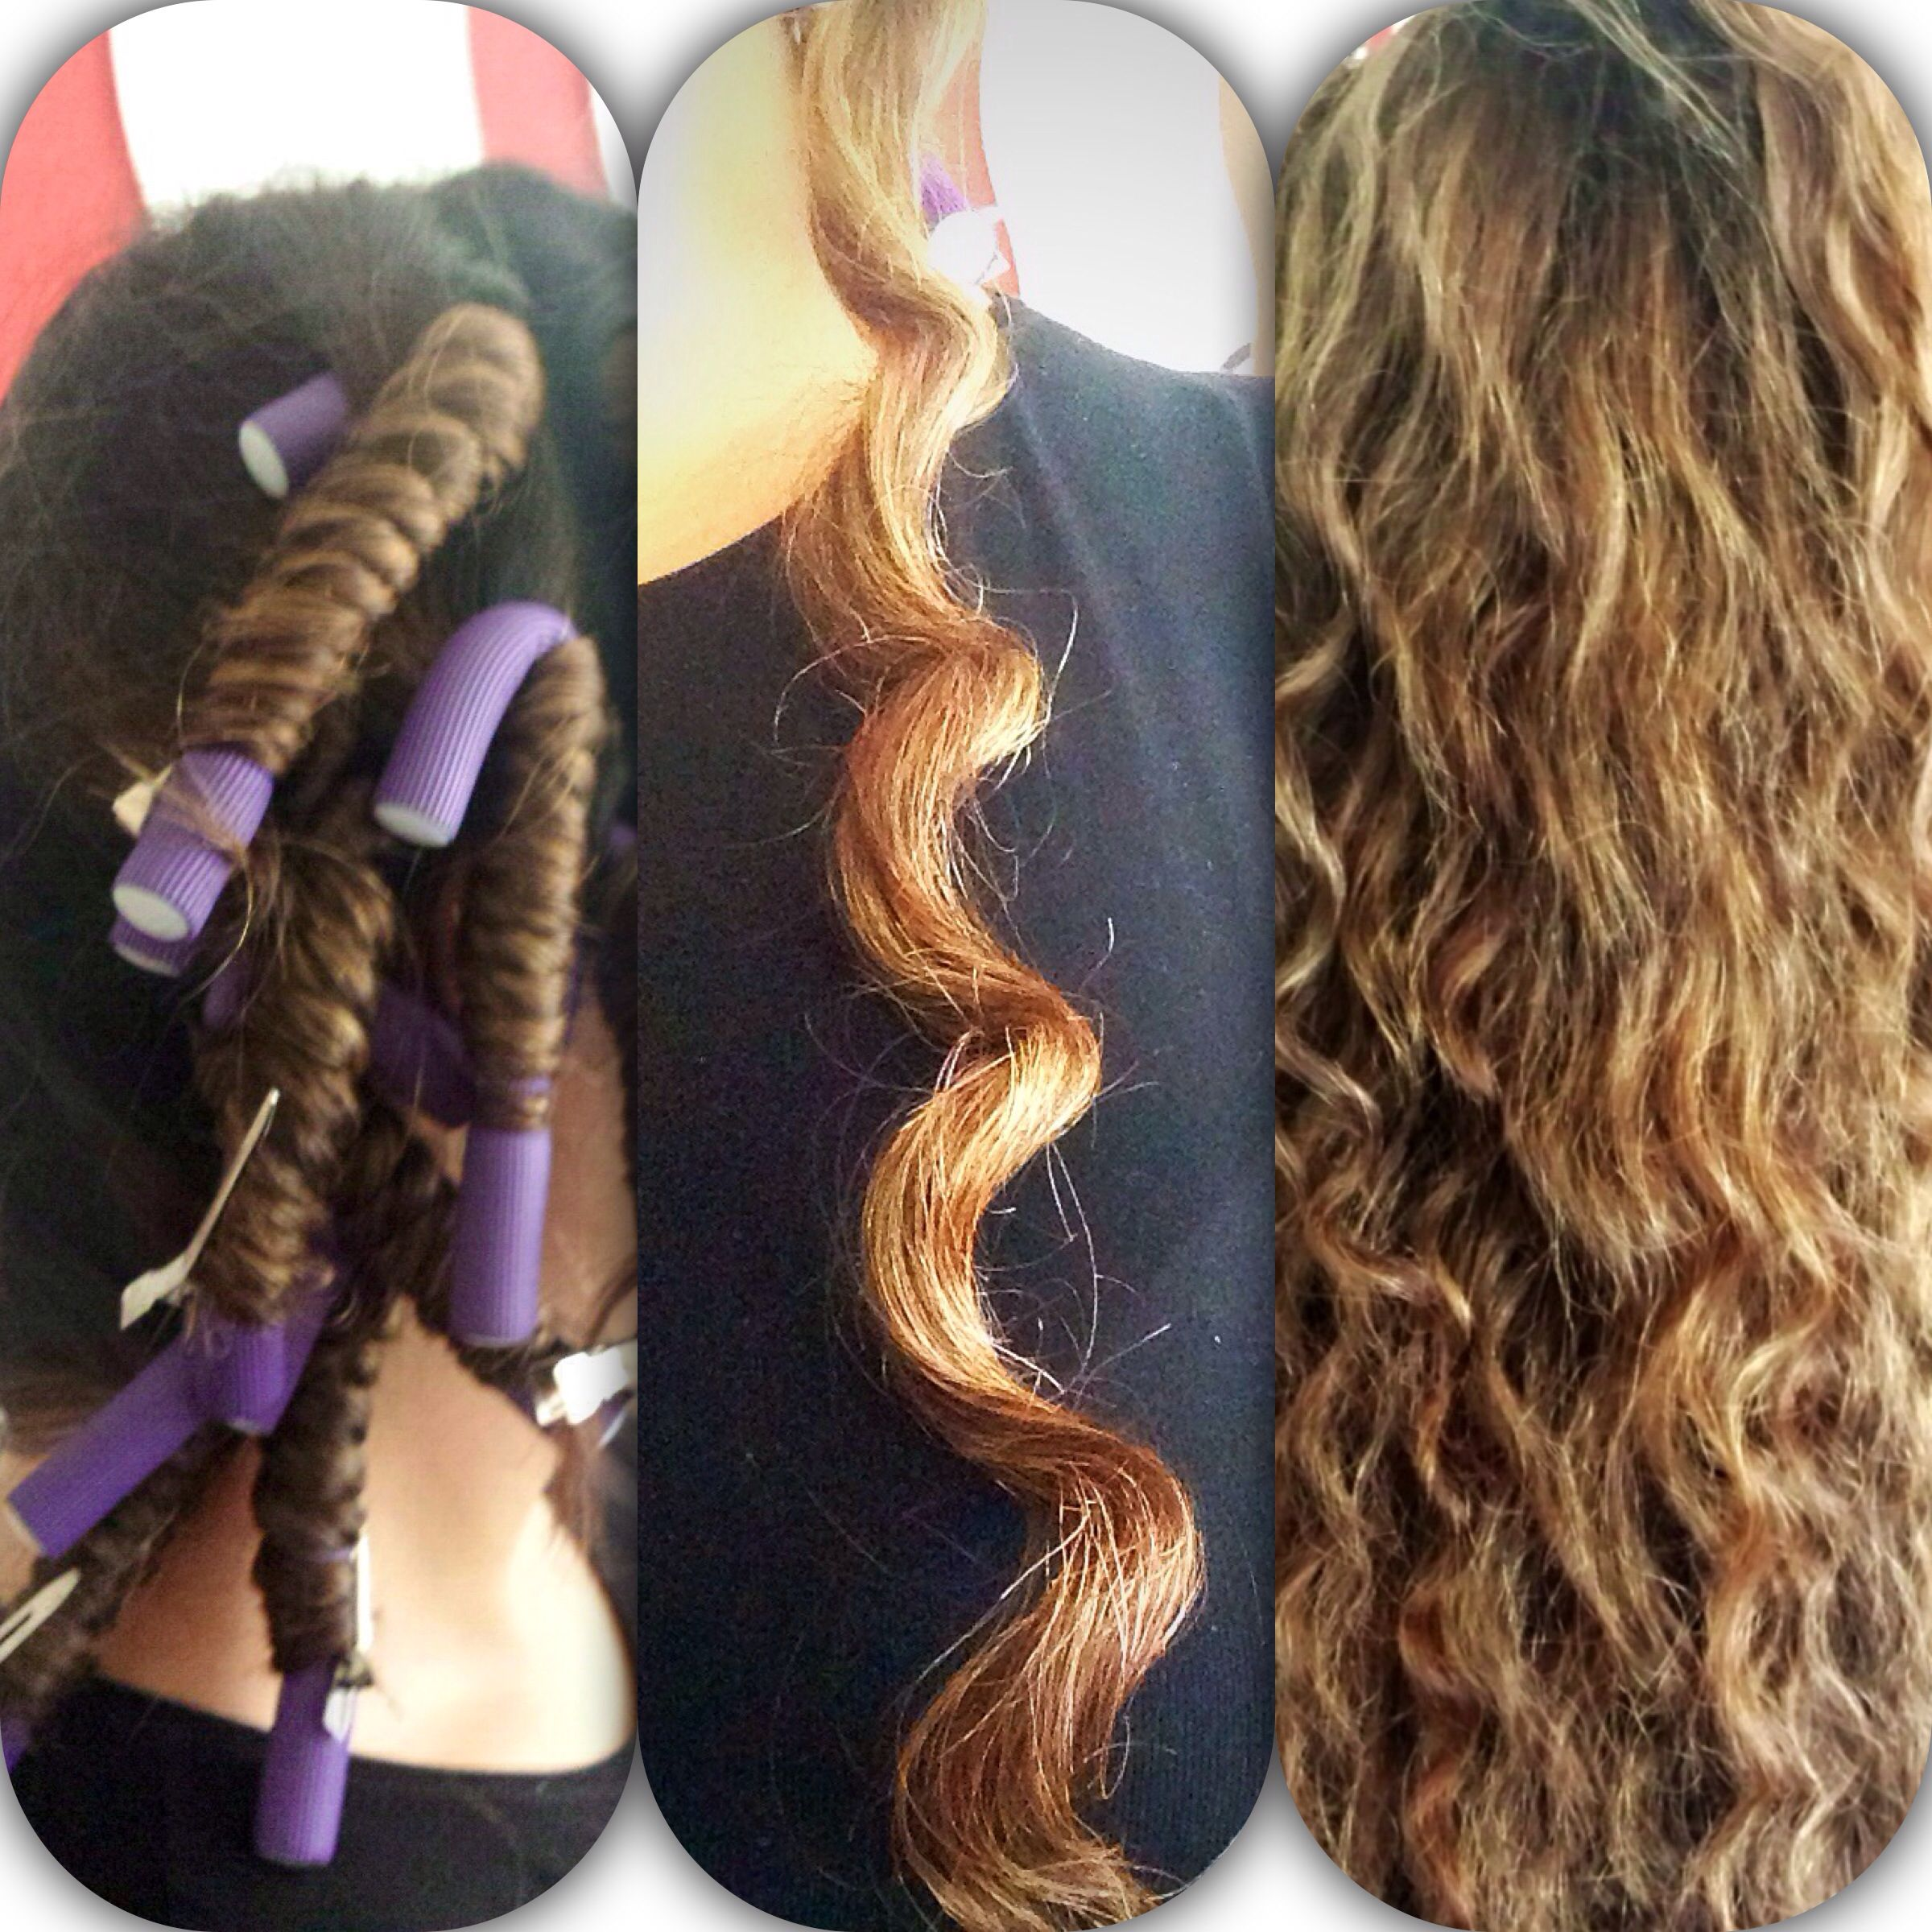 Get Perfect Heatless Hollywood Curls By Using Bendy Rollers And Blowdry Voila Perfect Beach Curl Ha Hair Styles Hair Rollers Tutorial Beautiful Long Hair